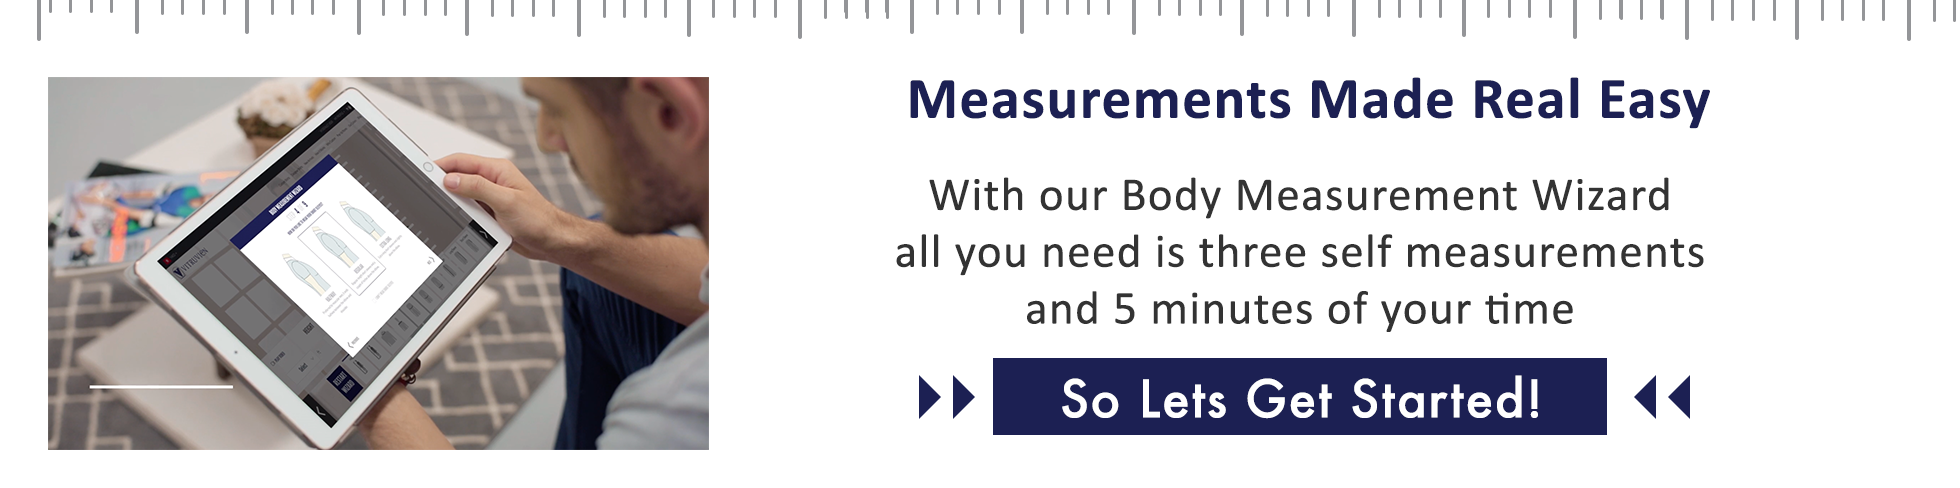 Measurement made real easy